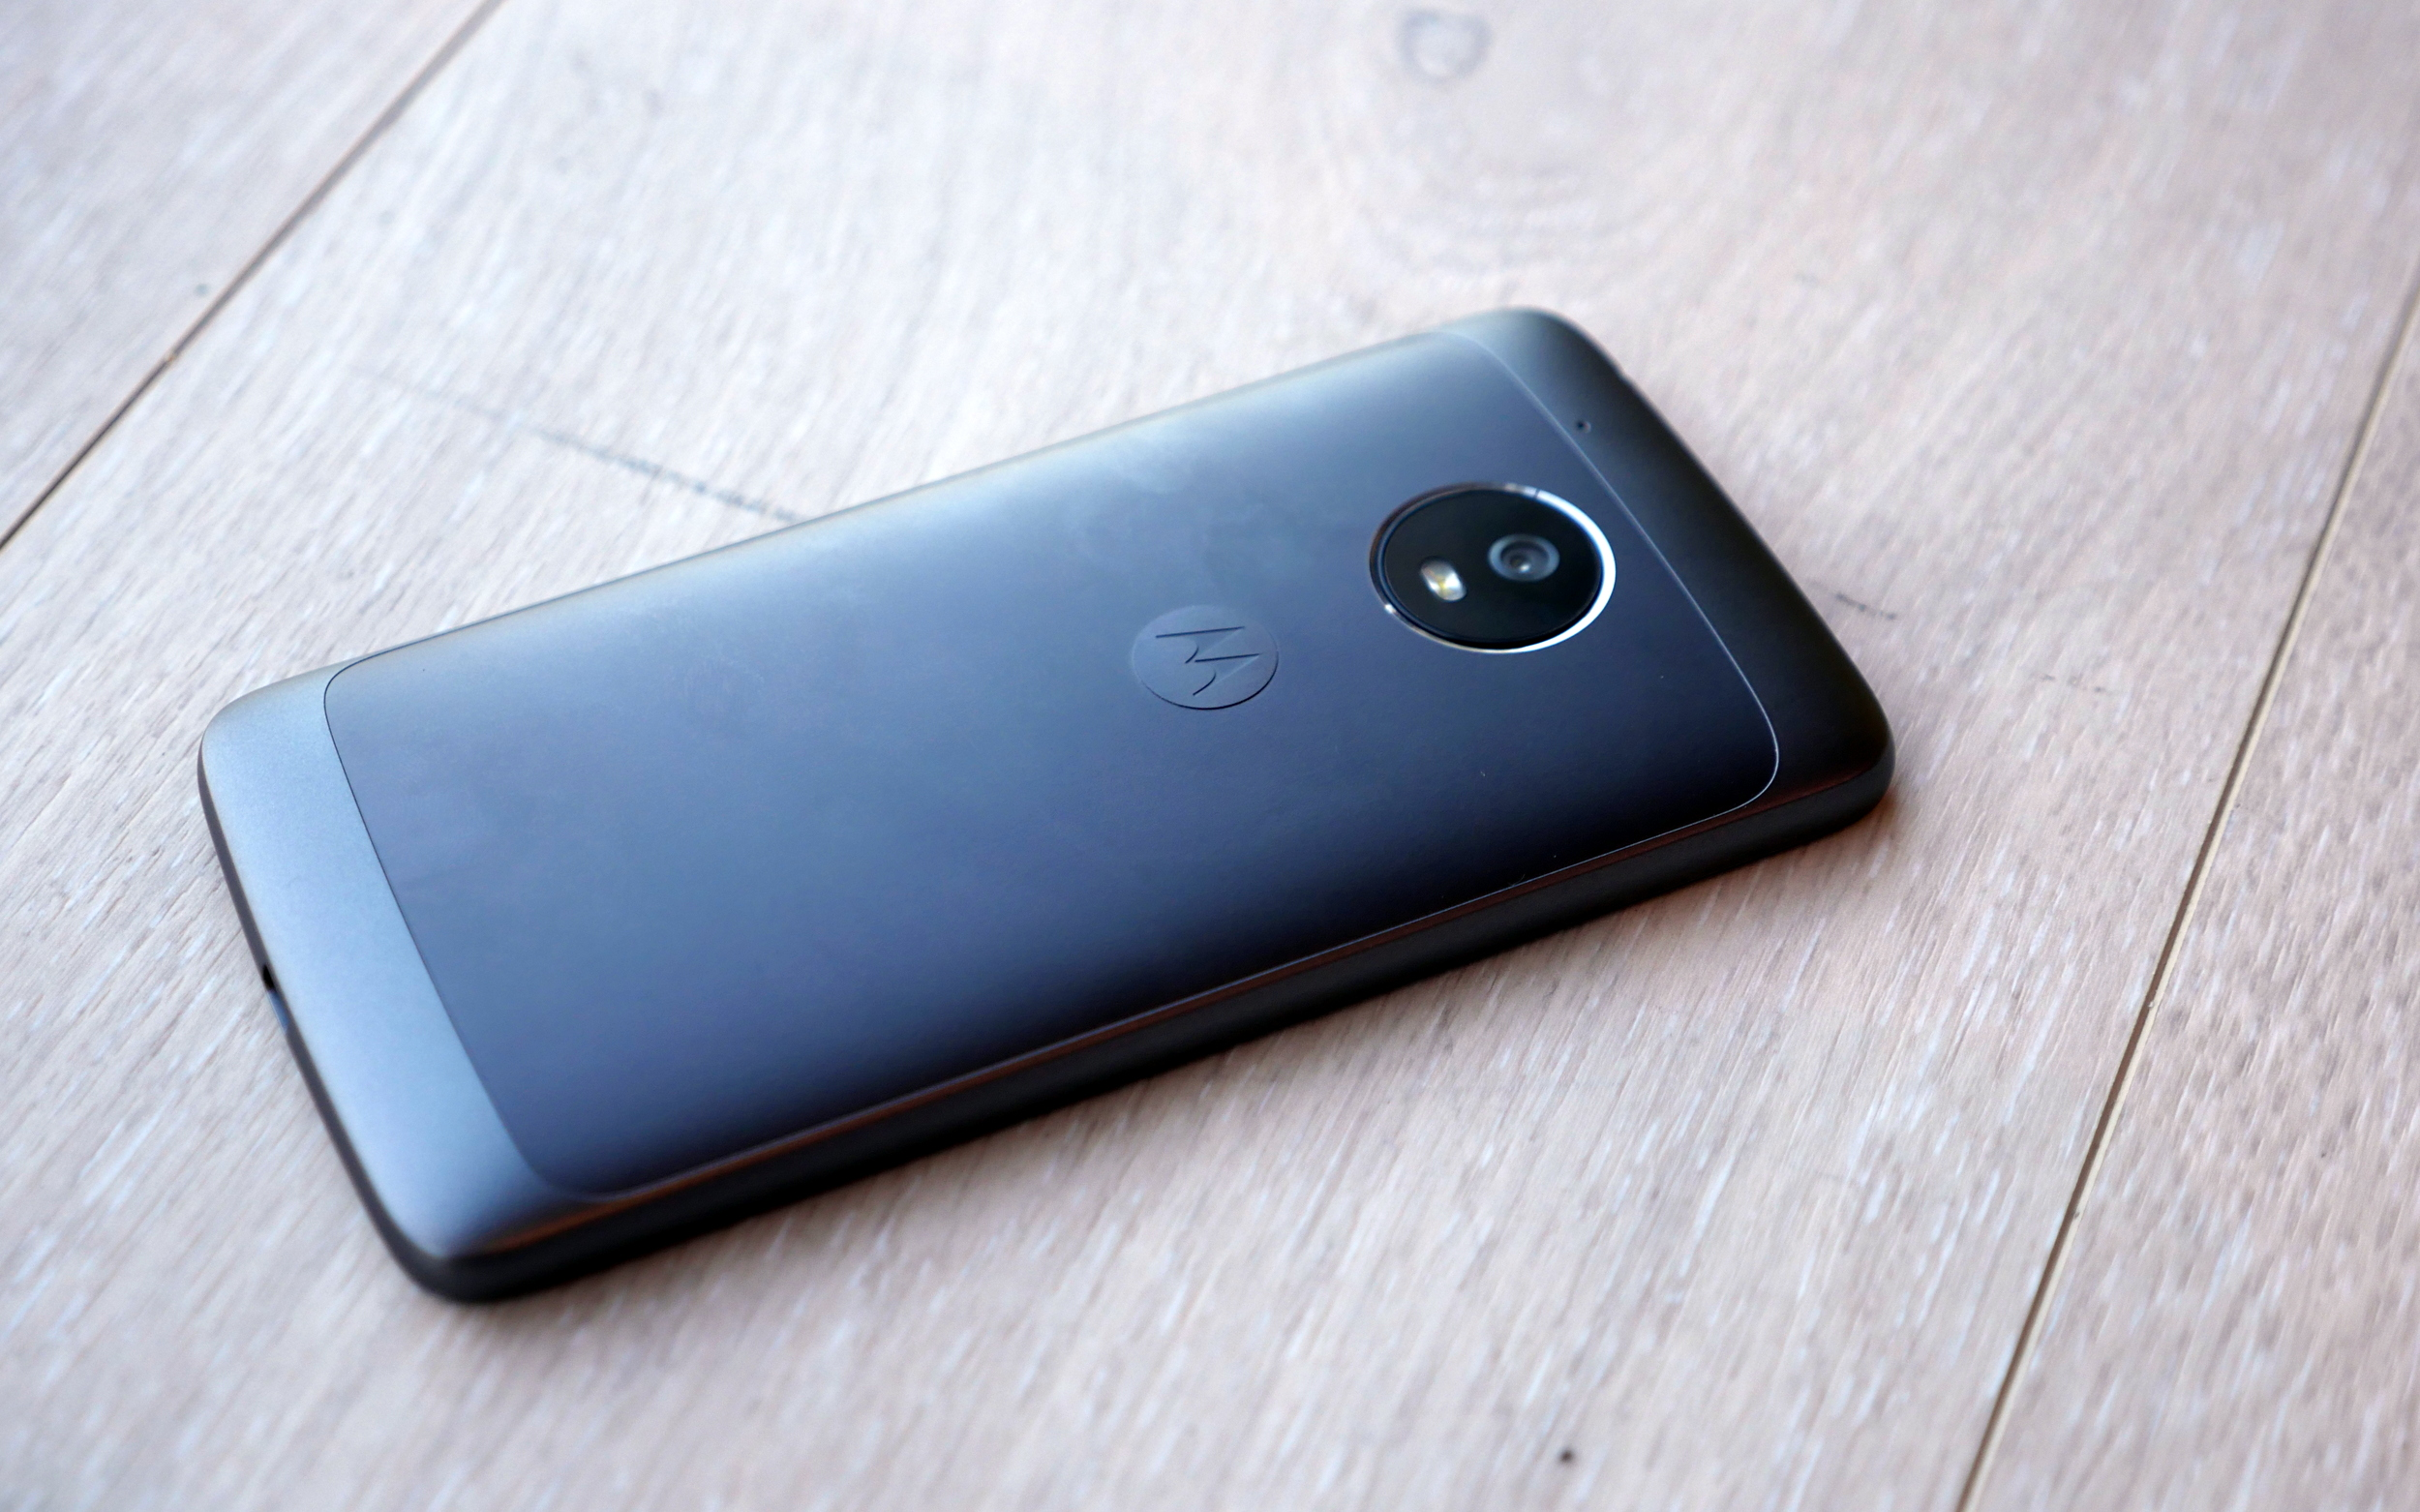 Hands-on with the Moto G5 Plus & Moto G5 [VIDEO]